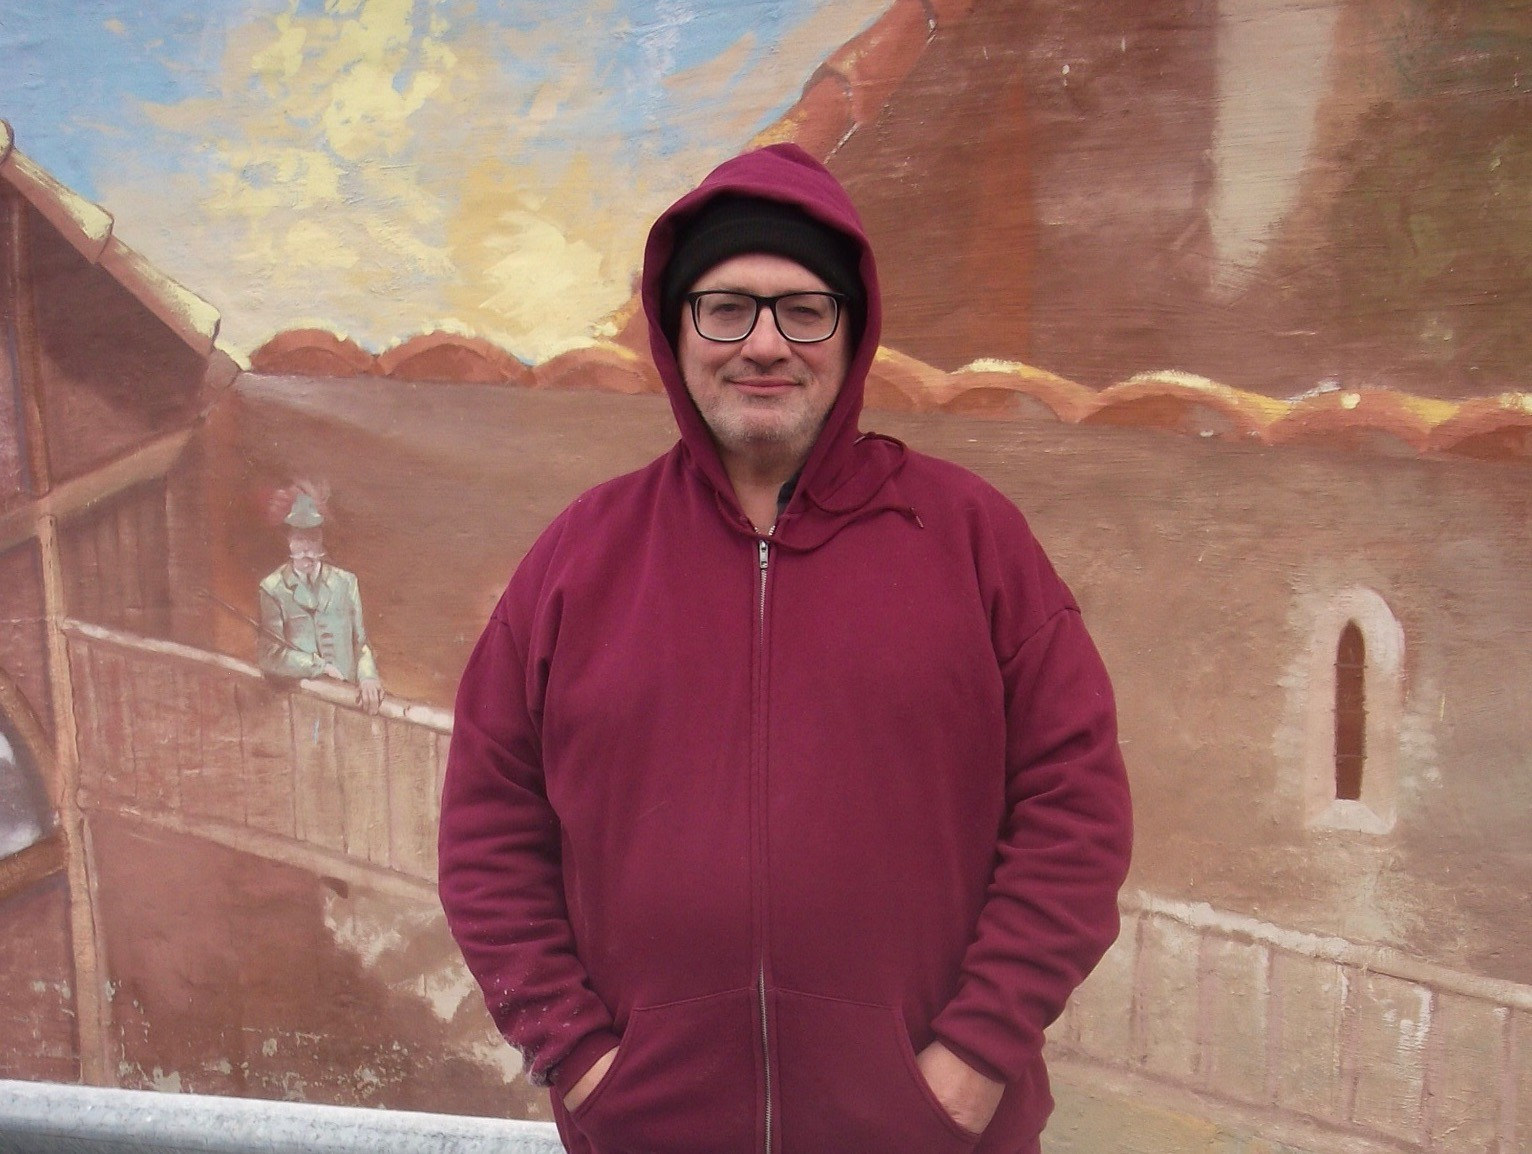 Lothar Speer in front of <i>A Touch of Europe: Memories of Germany</i> in February